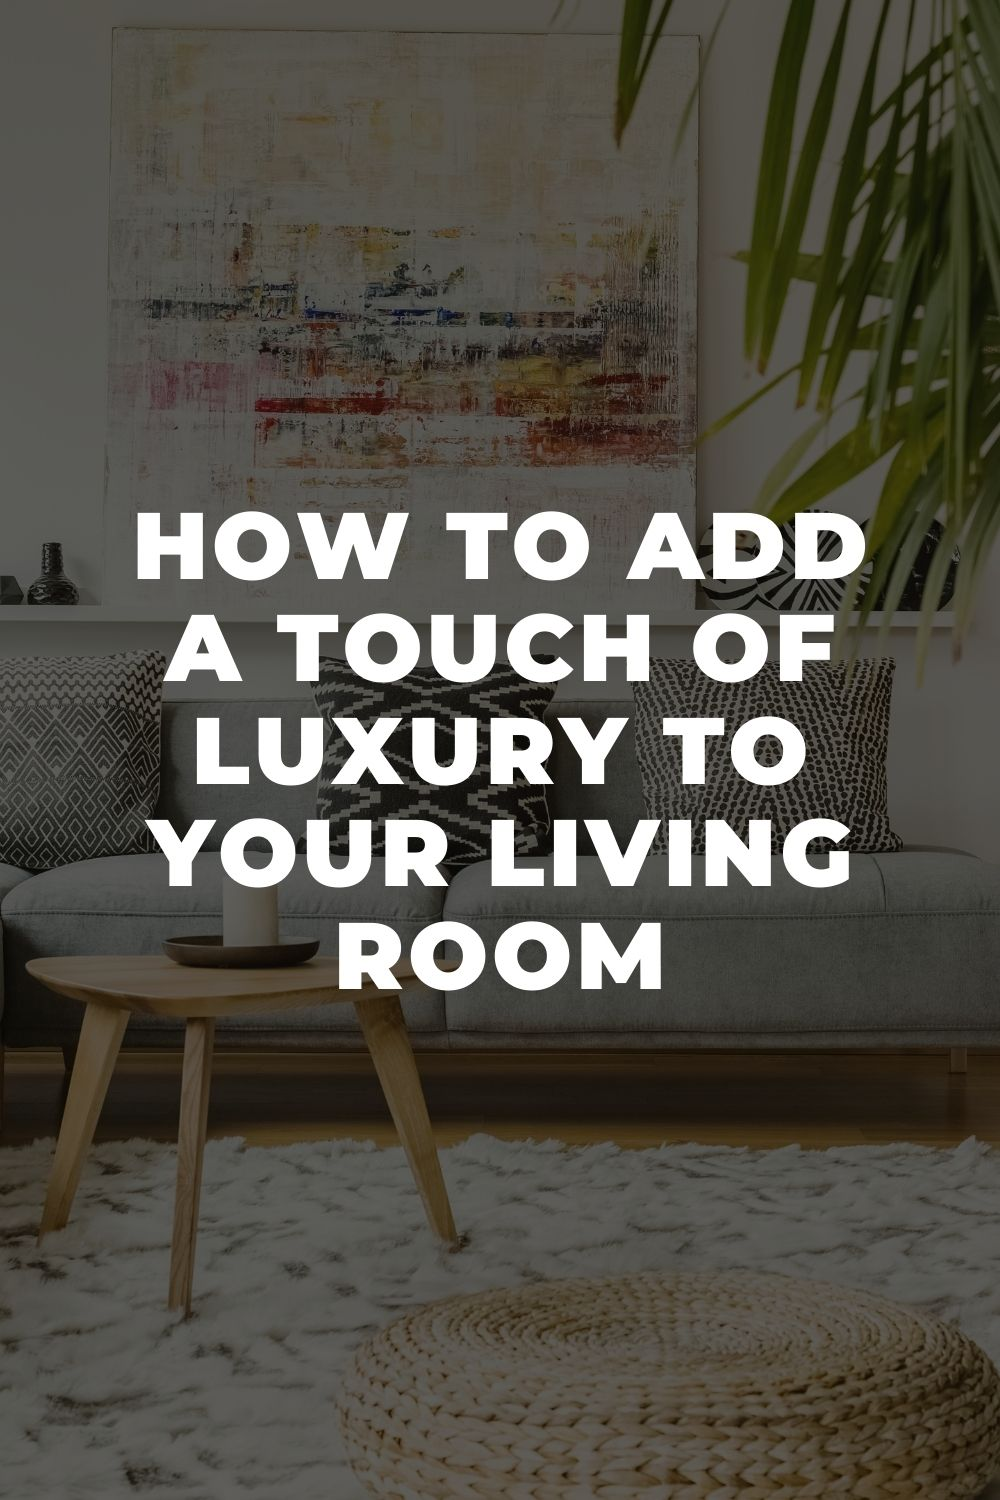 How to Add a Touch of Luxury to Your Living Room